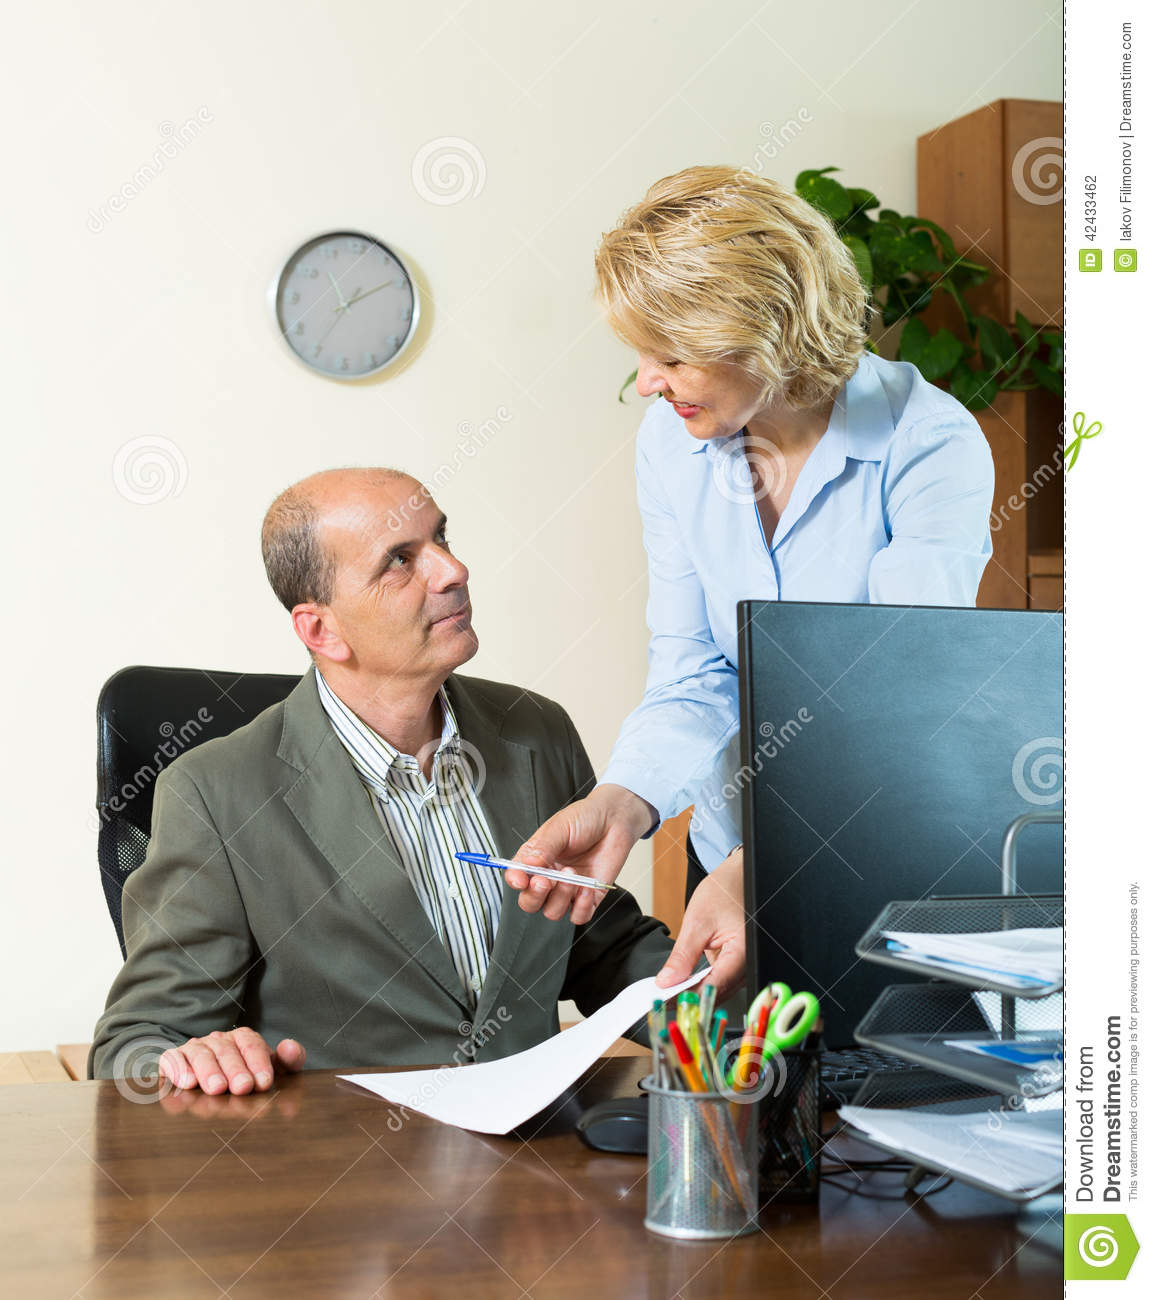 chief talking with secretary stock photo - image of interior, people